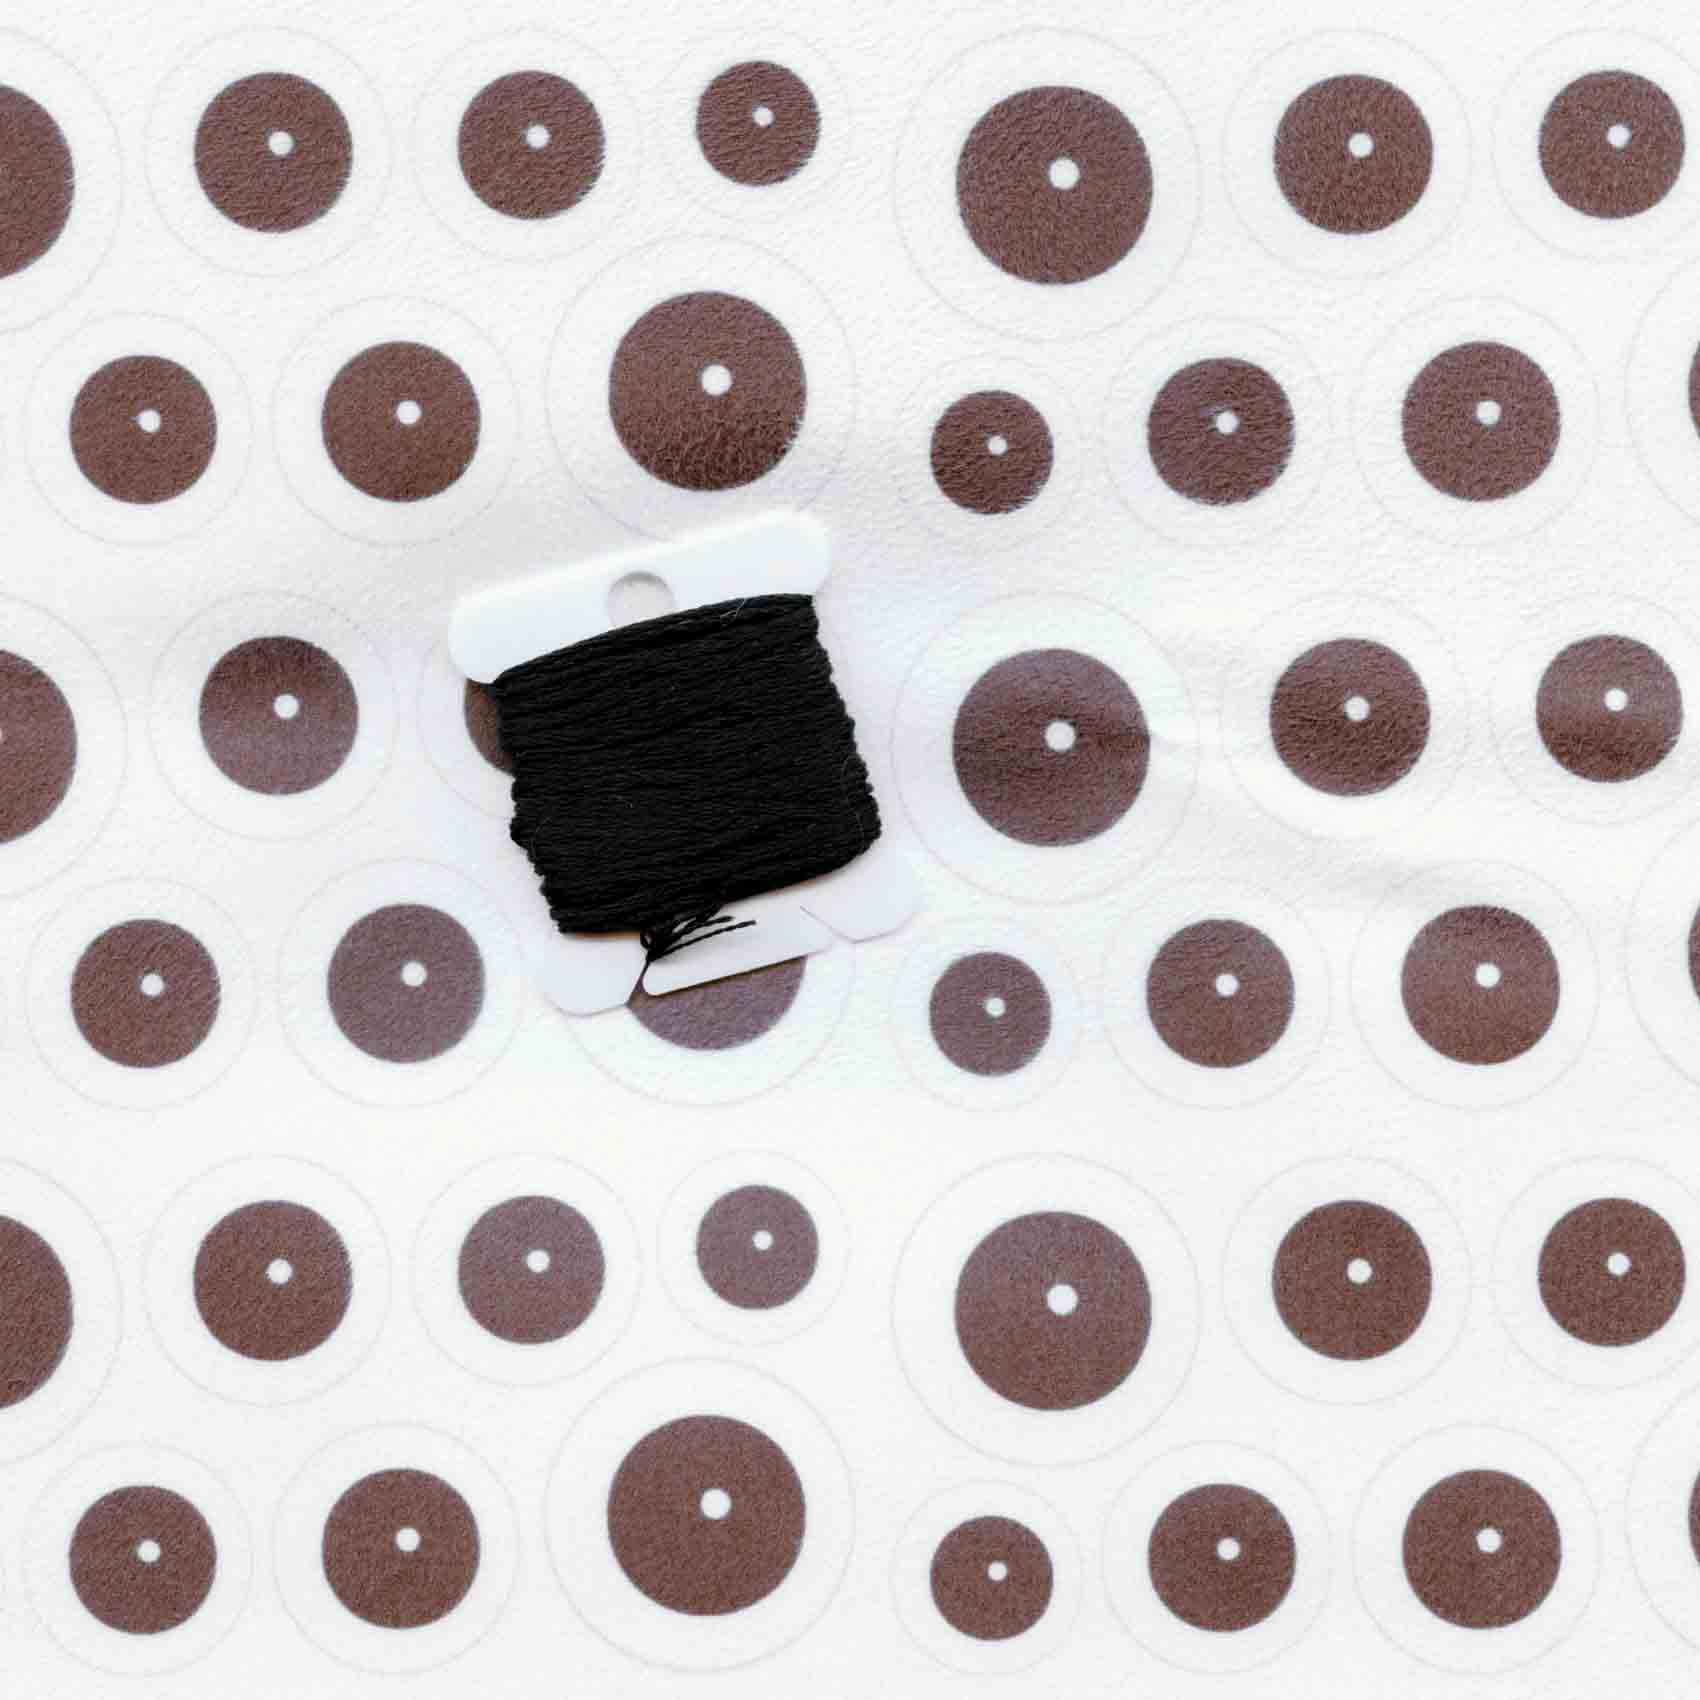 Spoonflower Faux Suede eyeballs compared to black